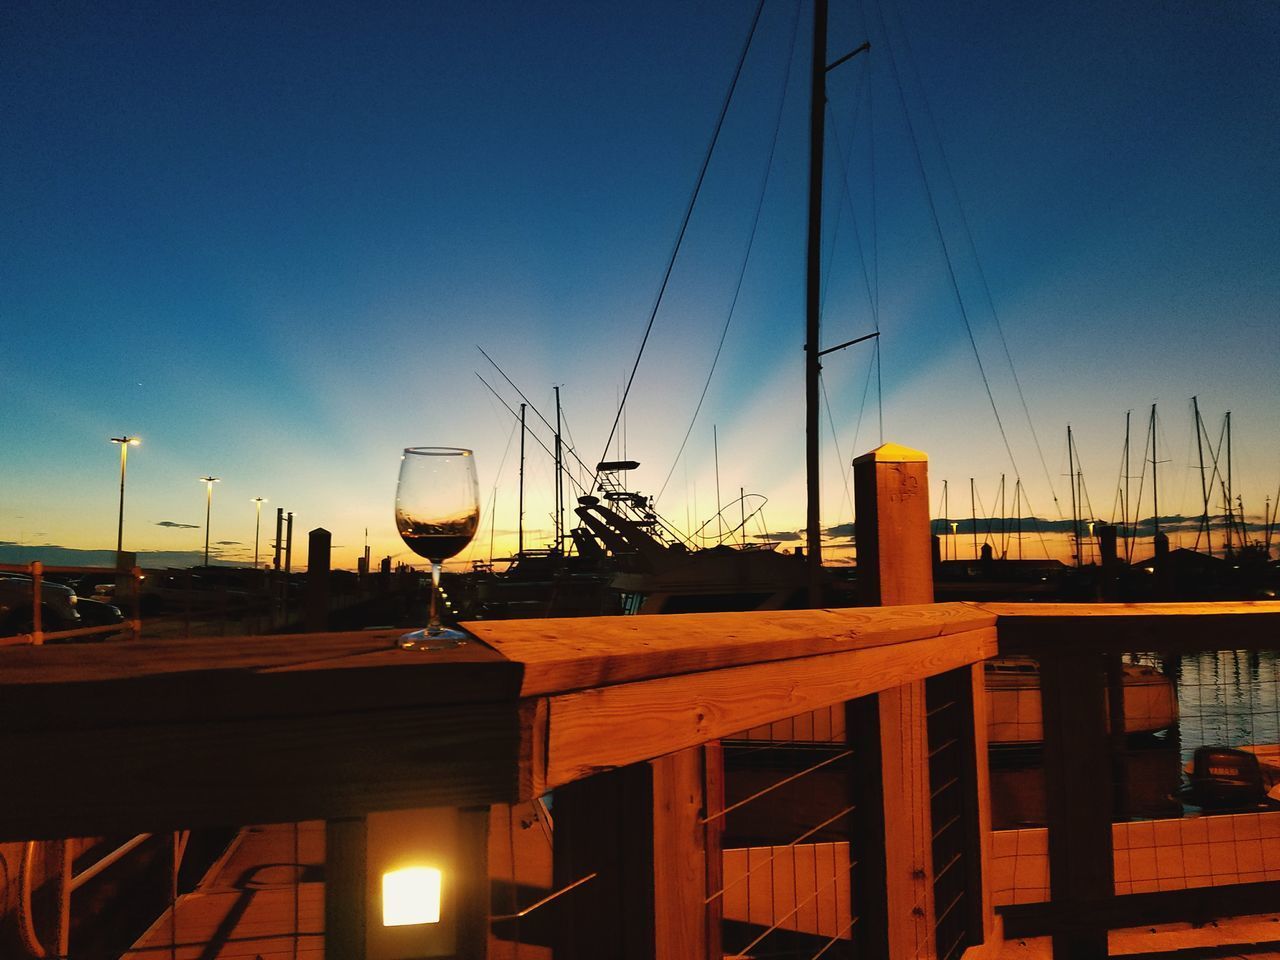 sunset, no people, sky, dusk, outdoors, blue, nautical vessel, wine, wineglass, clear sky, architecture, day, water, nature, wine cask